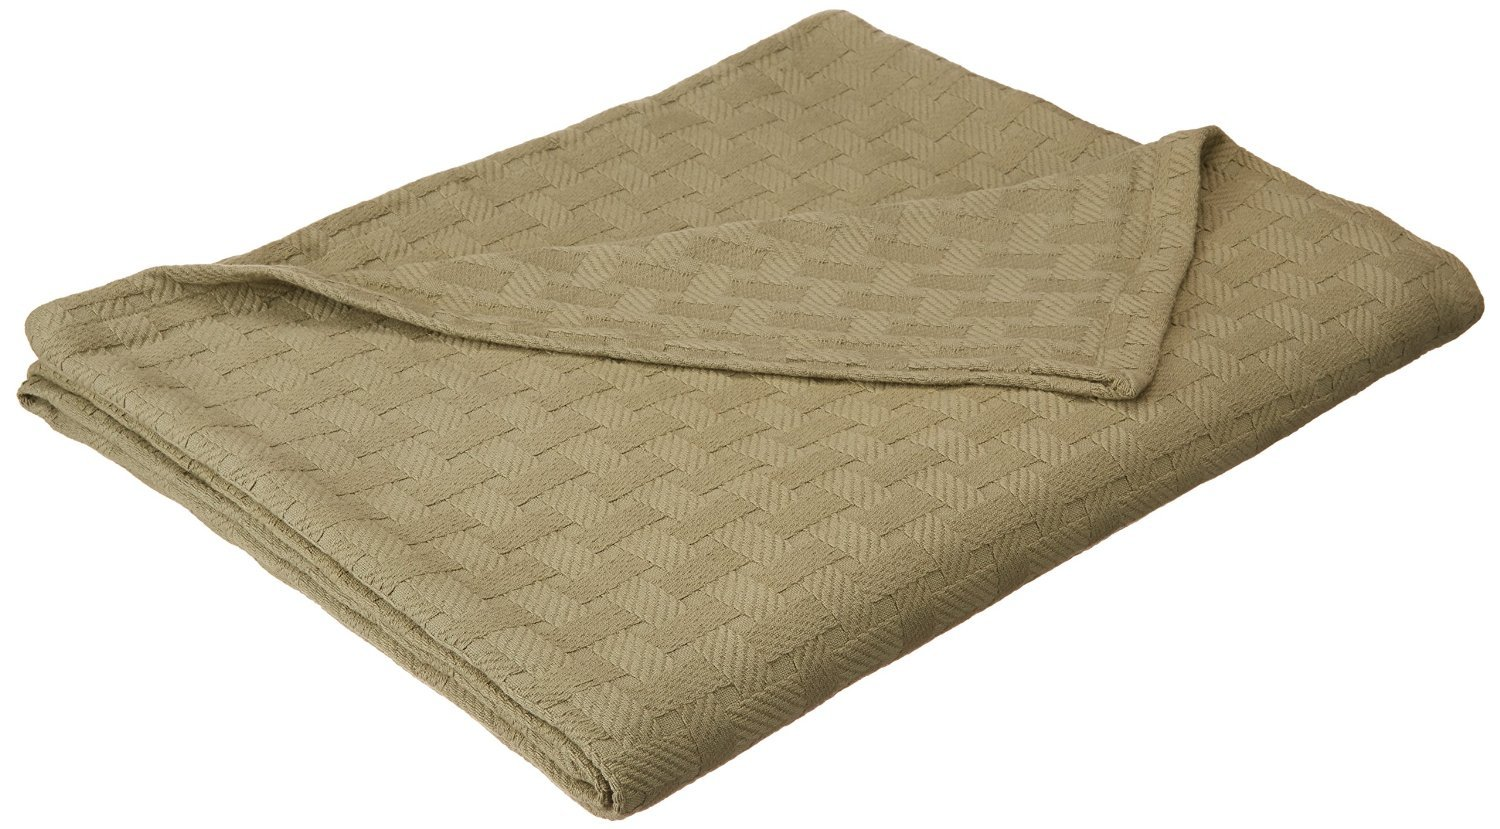 Superior 100% Cotton Thermal Blanket, Soft and Breathable Cotton for All Seasons, Bed Blanket and Oversized Throw Blanket with Luxurious Basket Weave Pattern - King Size, Sage